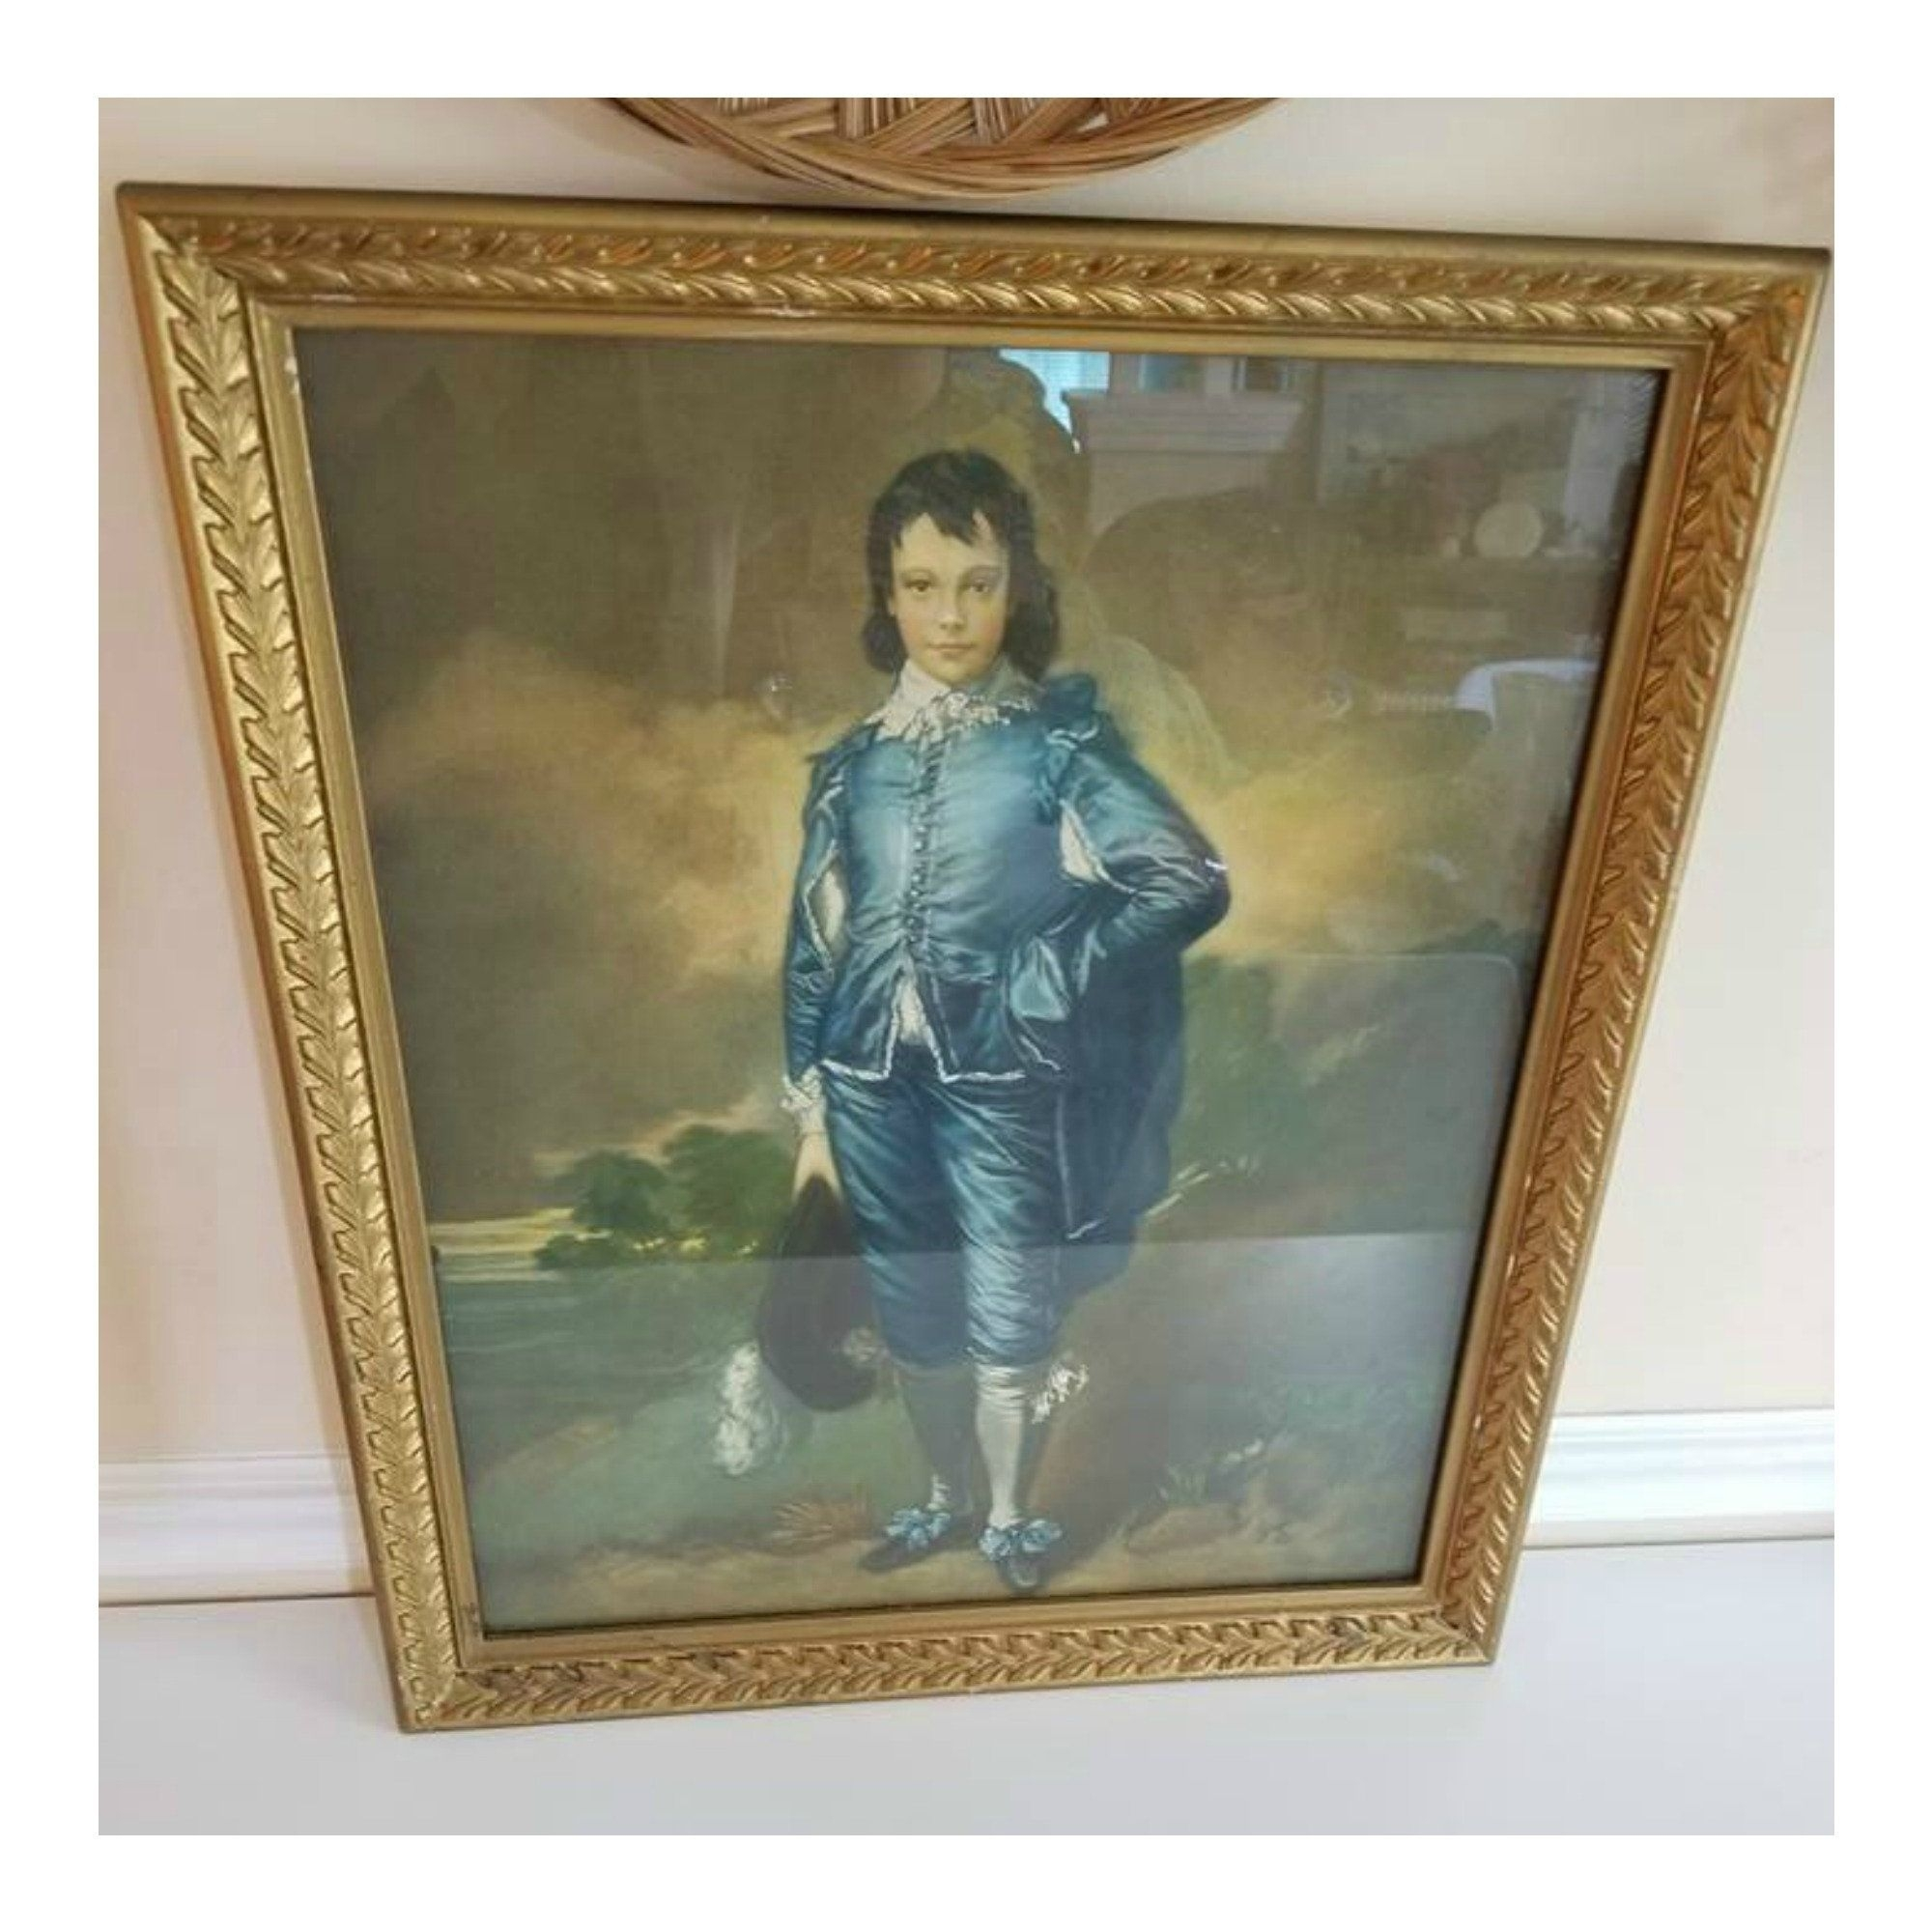 Framed Original The Blue Boy Print, Vintage Framed Litho, Thomas Pertaining To Current Shabby Chic Framed Art Prints (View 6 of 15)